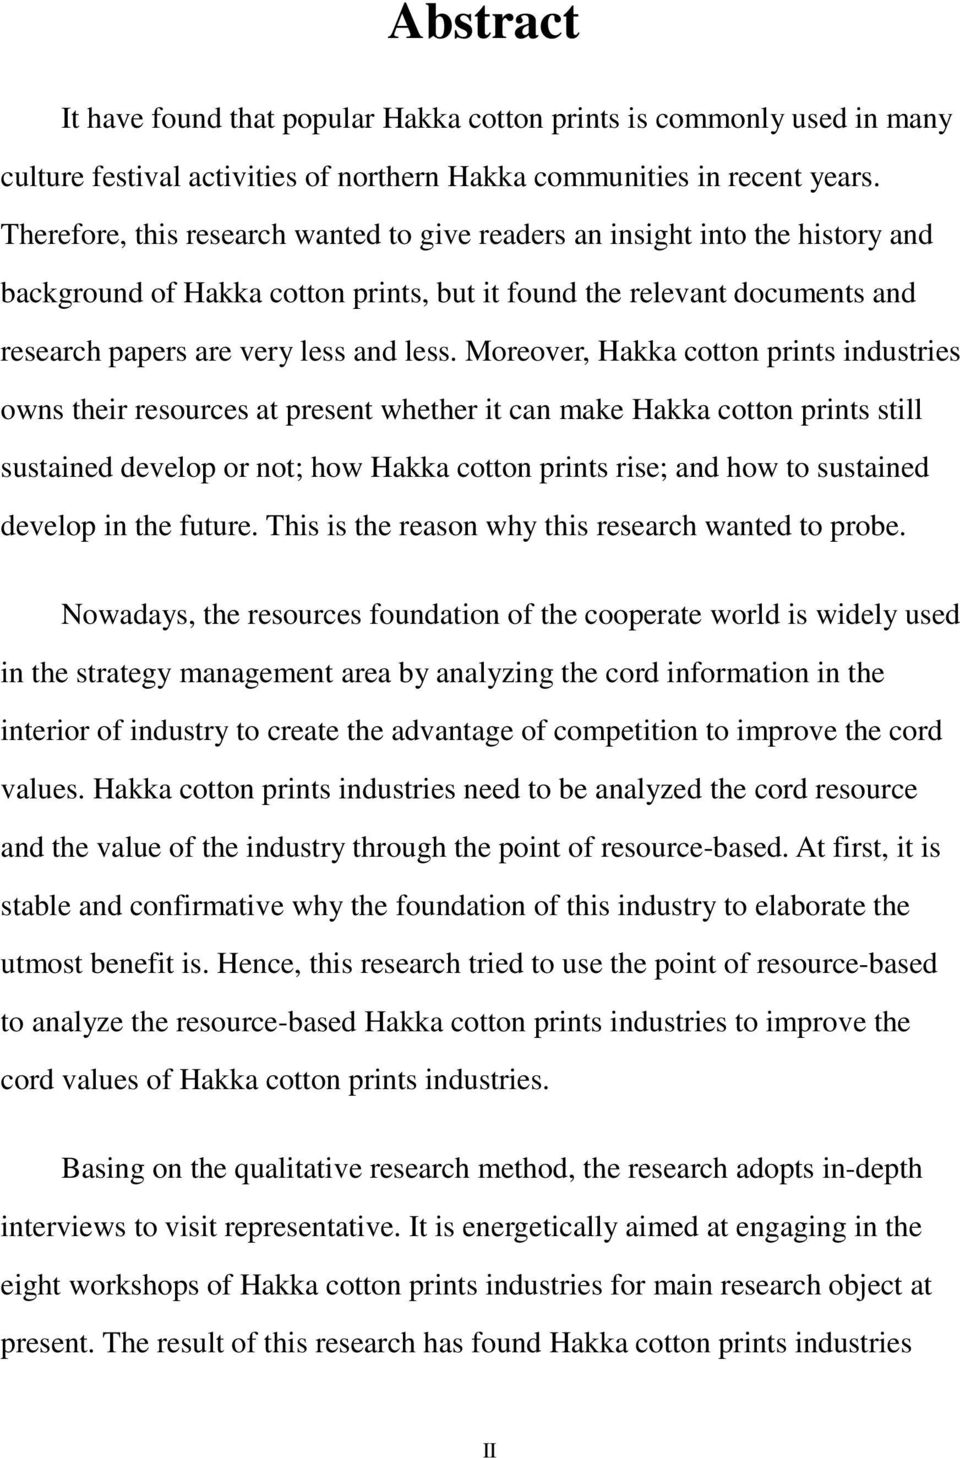 Moreover, Hakka cotton prints industries owns their resources at present whether it can make Hakka cotton prints still sustained develop or not; how Hakka cotton prints rise; and how to sustained